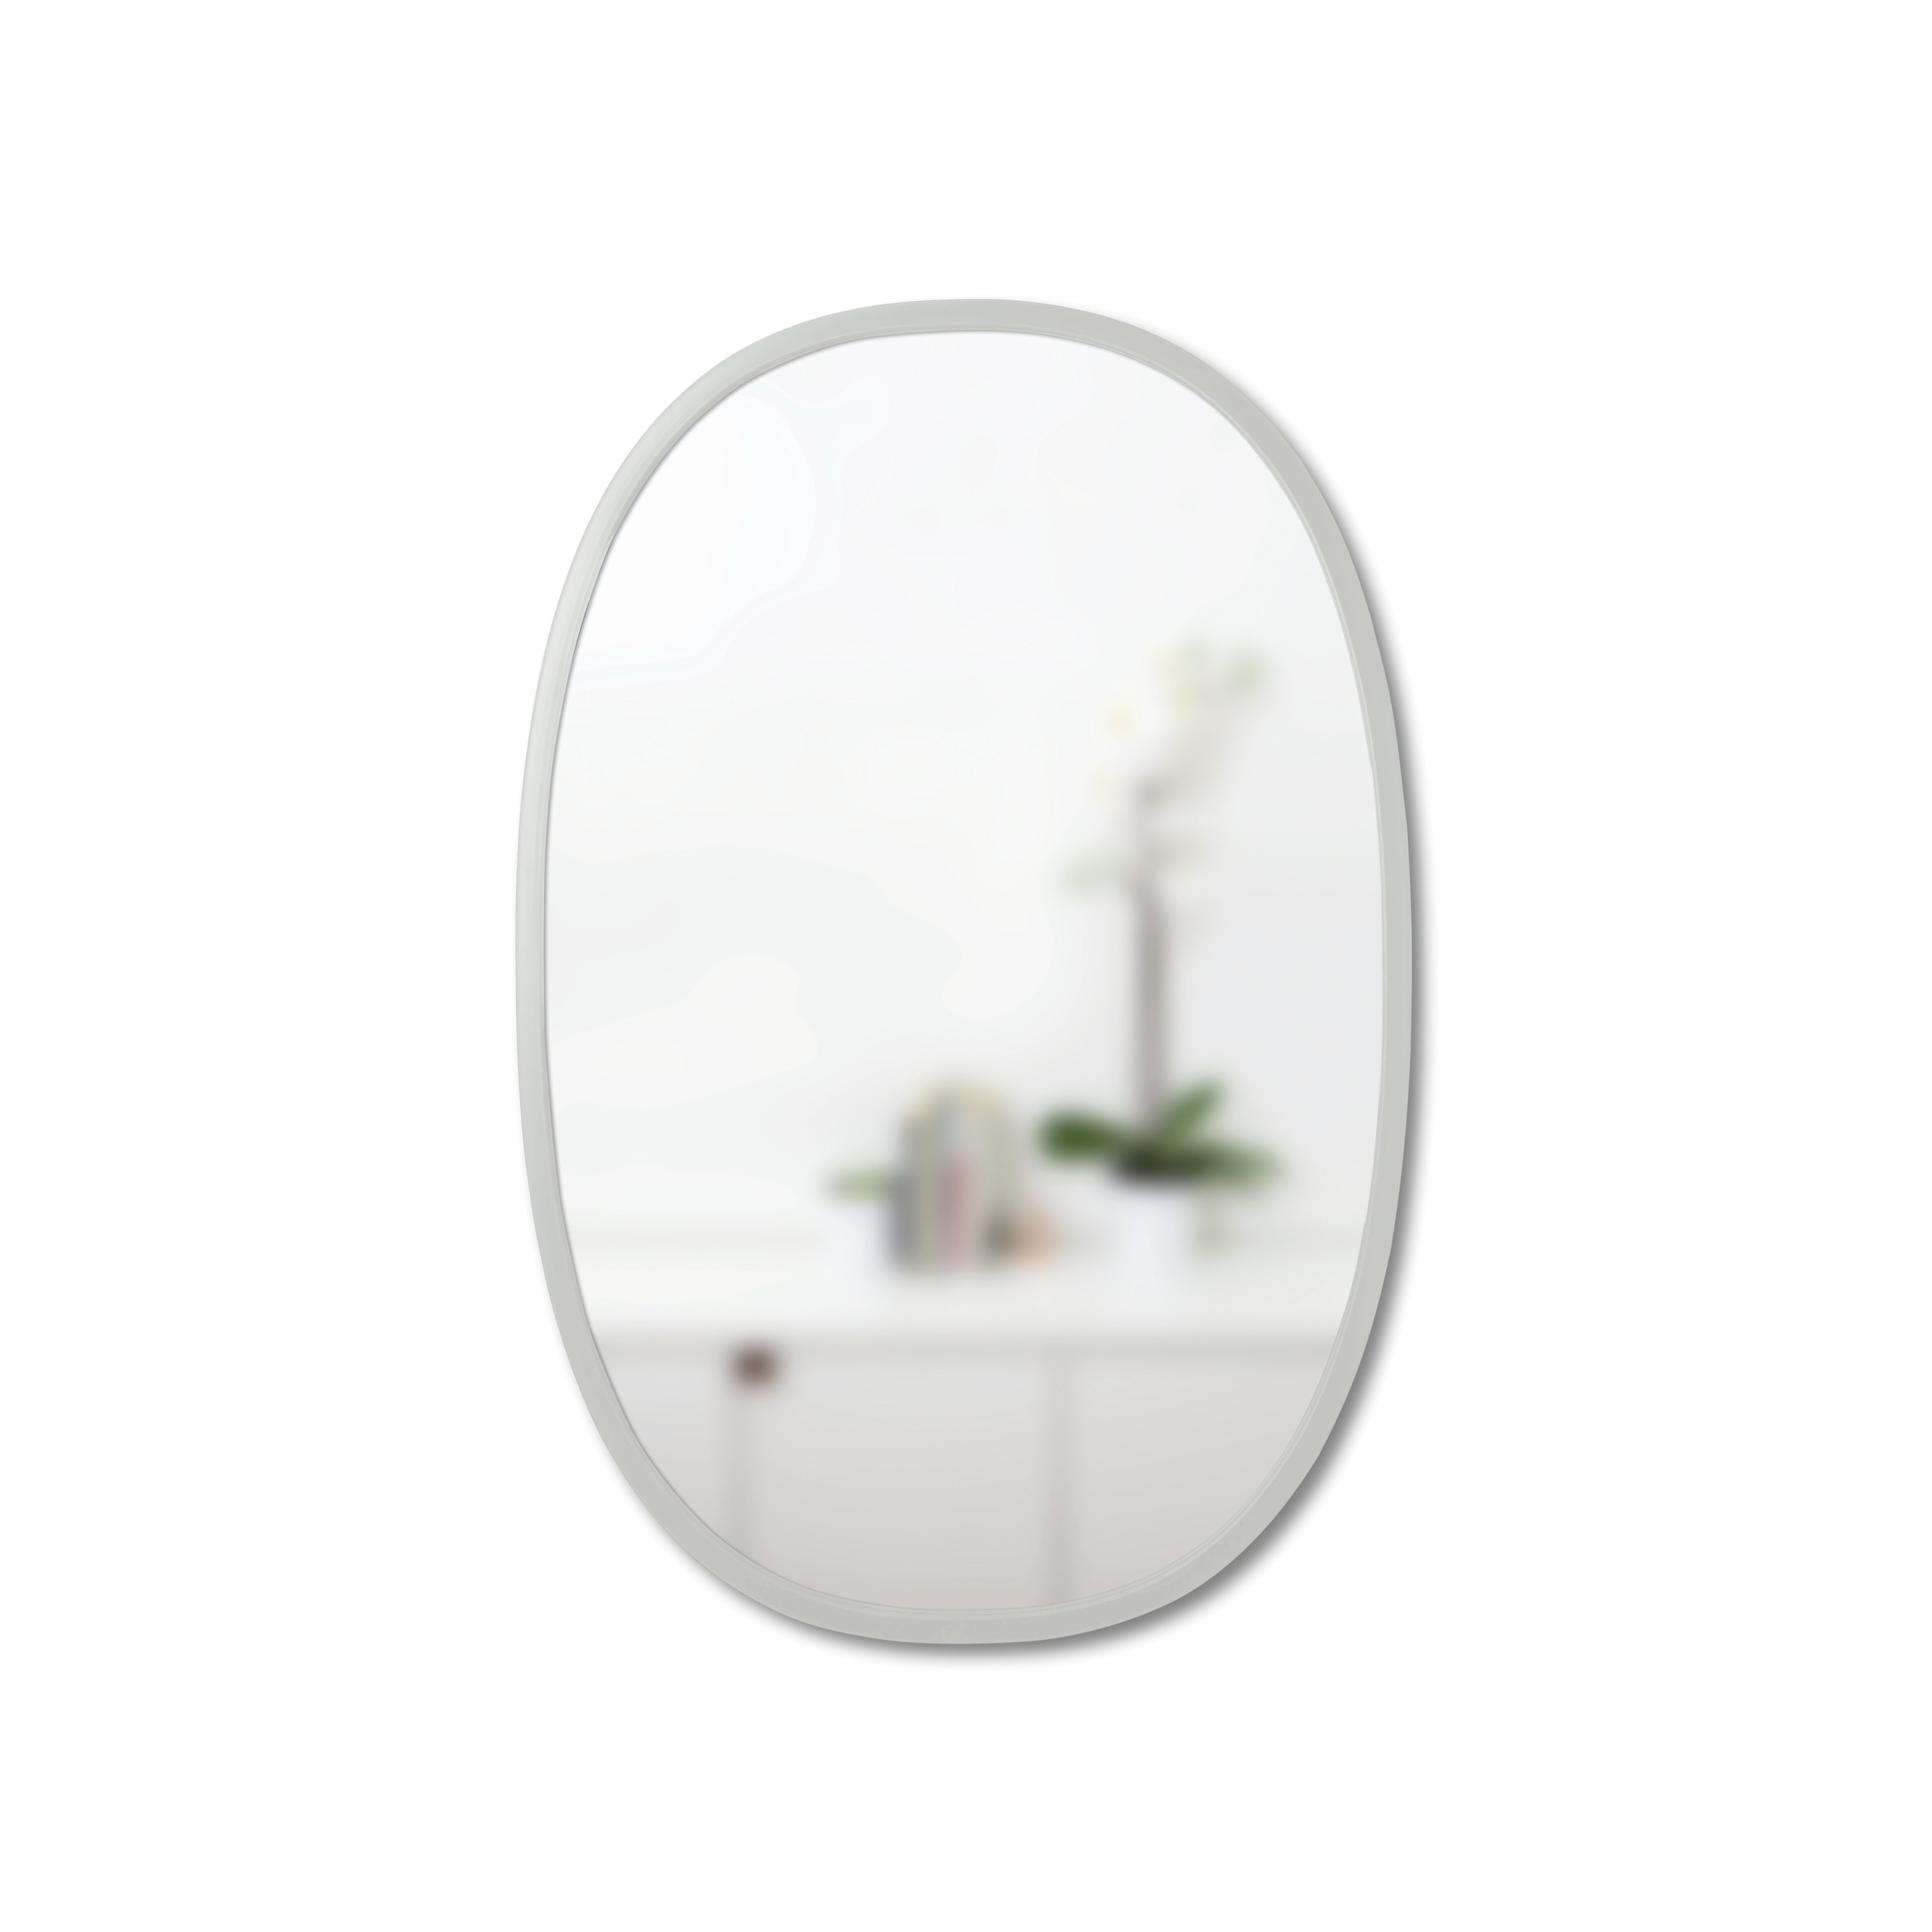 Hub Modern & Contemporary Accent Mirror pertaining to Hub Modern And Contemporary Accent Mirrors (Image 2 of 30)